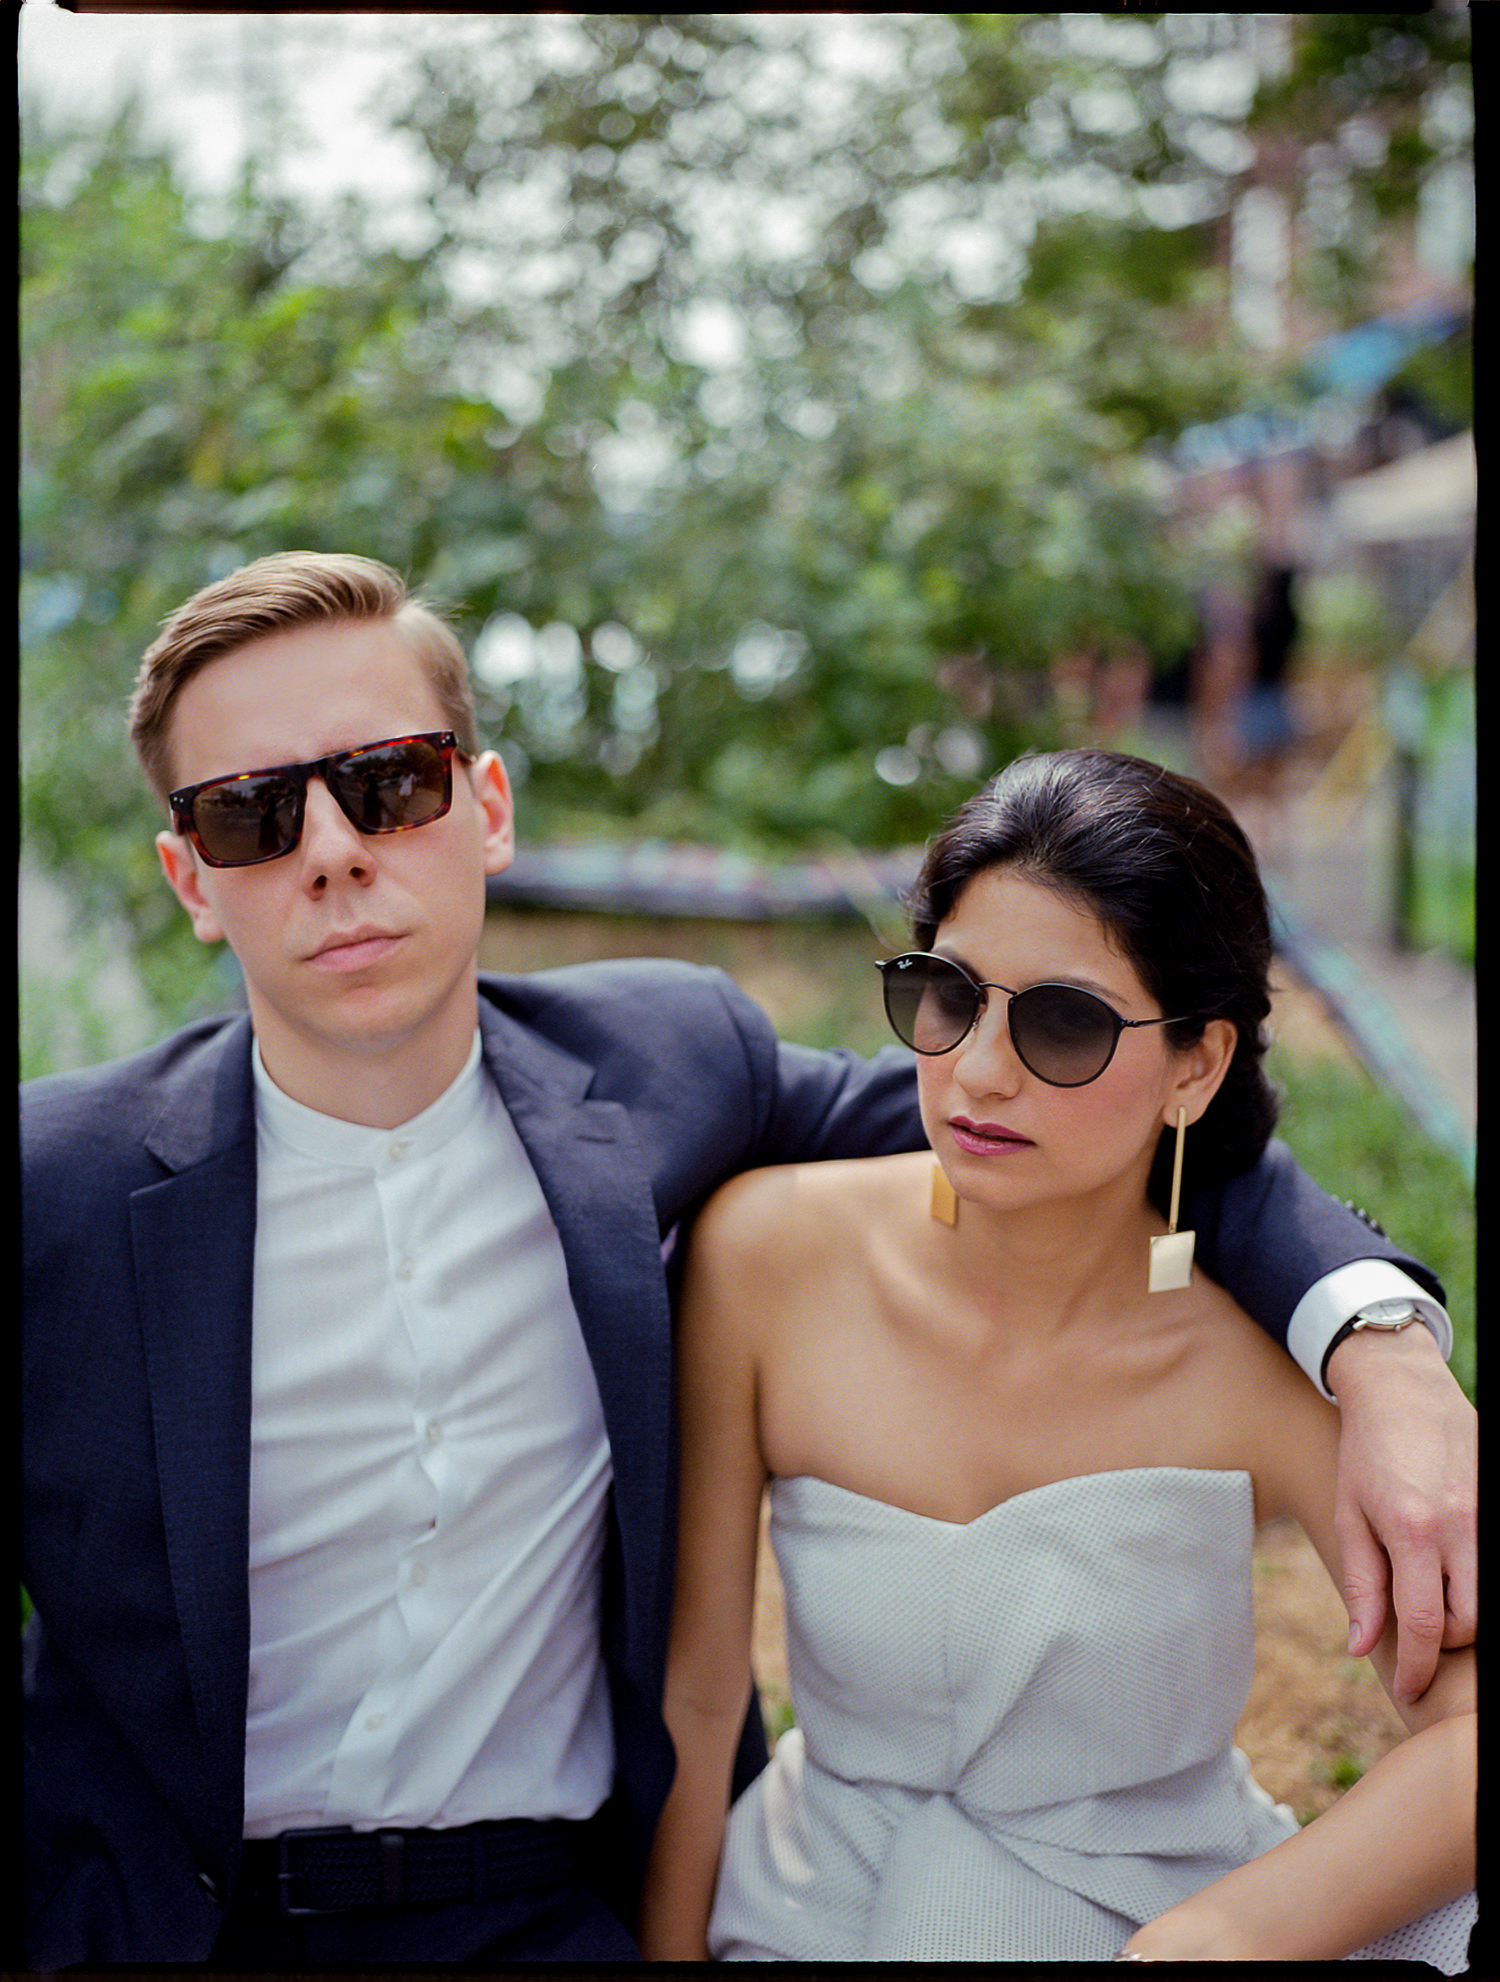 Best-Documentary-Wedding-Photographers-Toronto-Analog-Film-Photographer-Downtown-Kensington-Market-City-Bride-Bridal-Jumpsuit-Style-Inspiration-Graffiti-Vibes-Cool-Bride-and-Groom.jpg